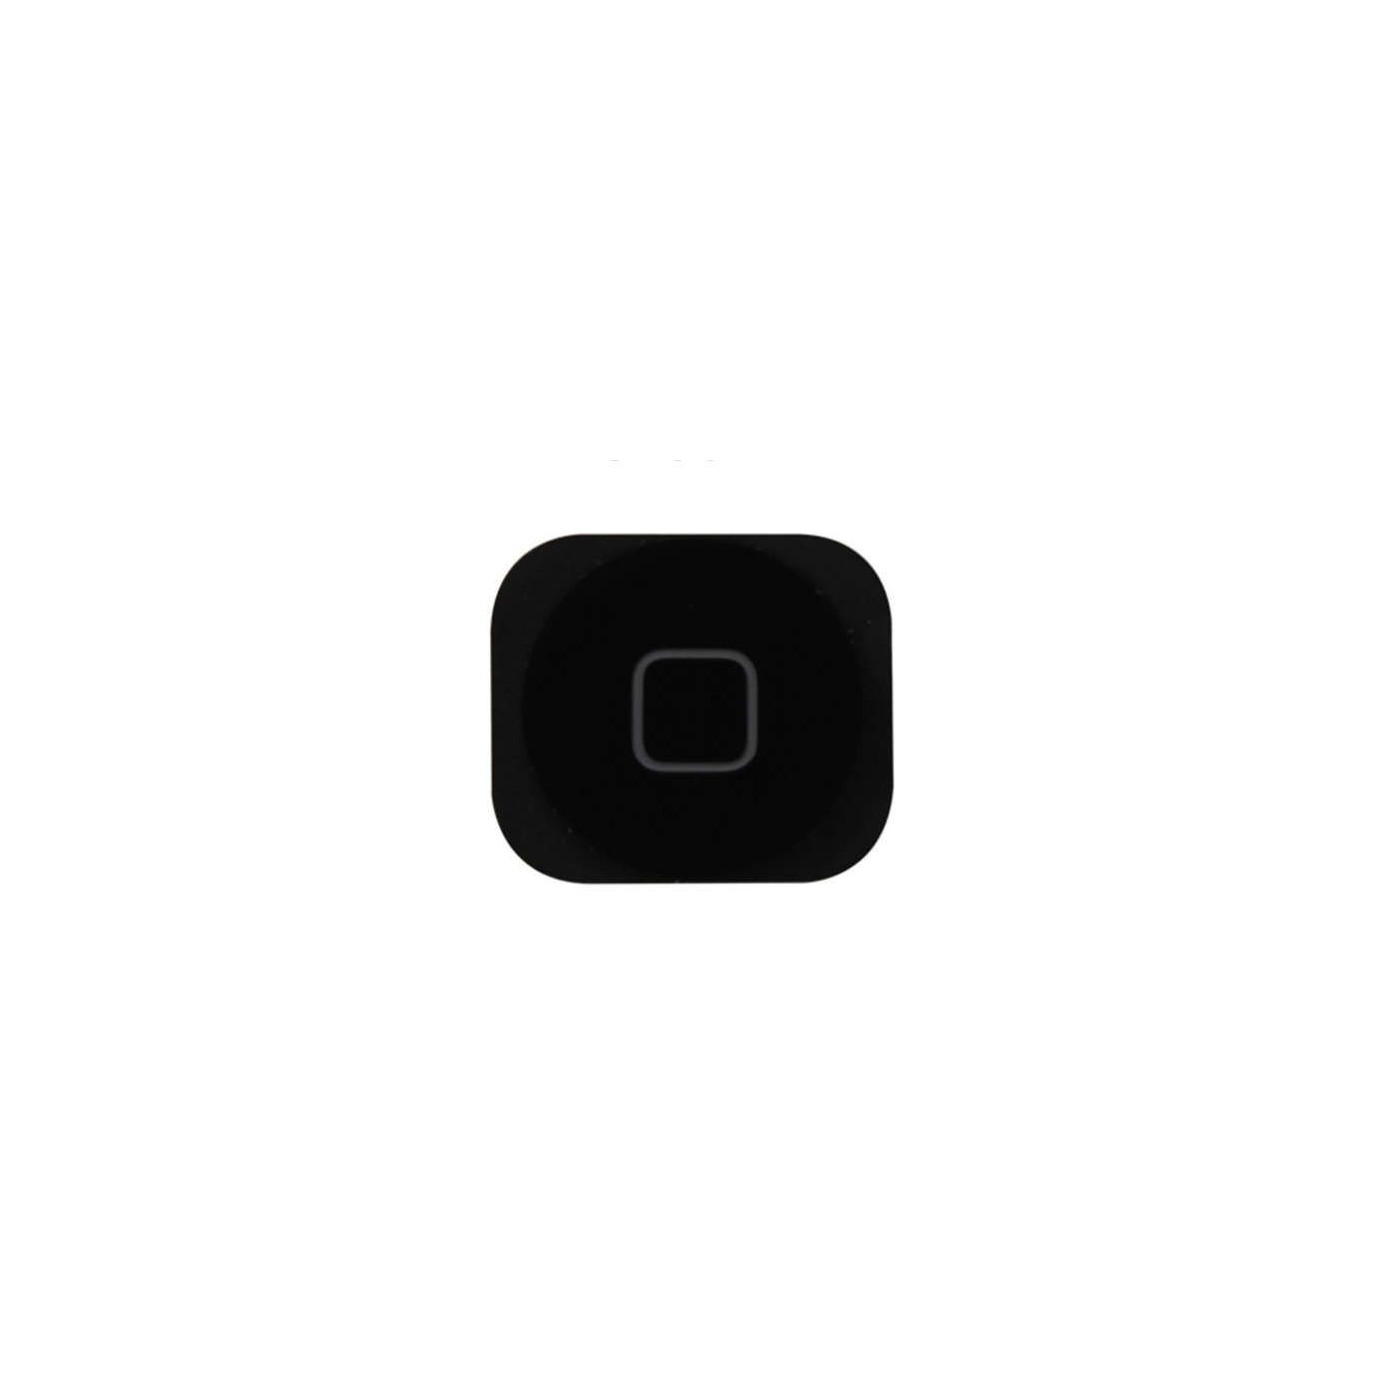 Home Button for apple iphone 5c button black central button cursor button